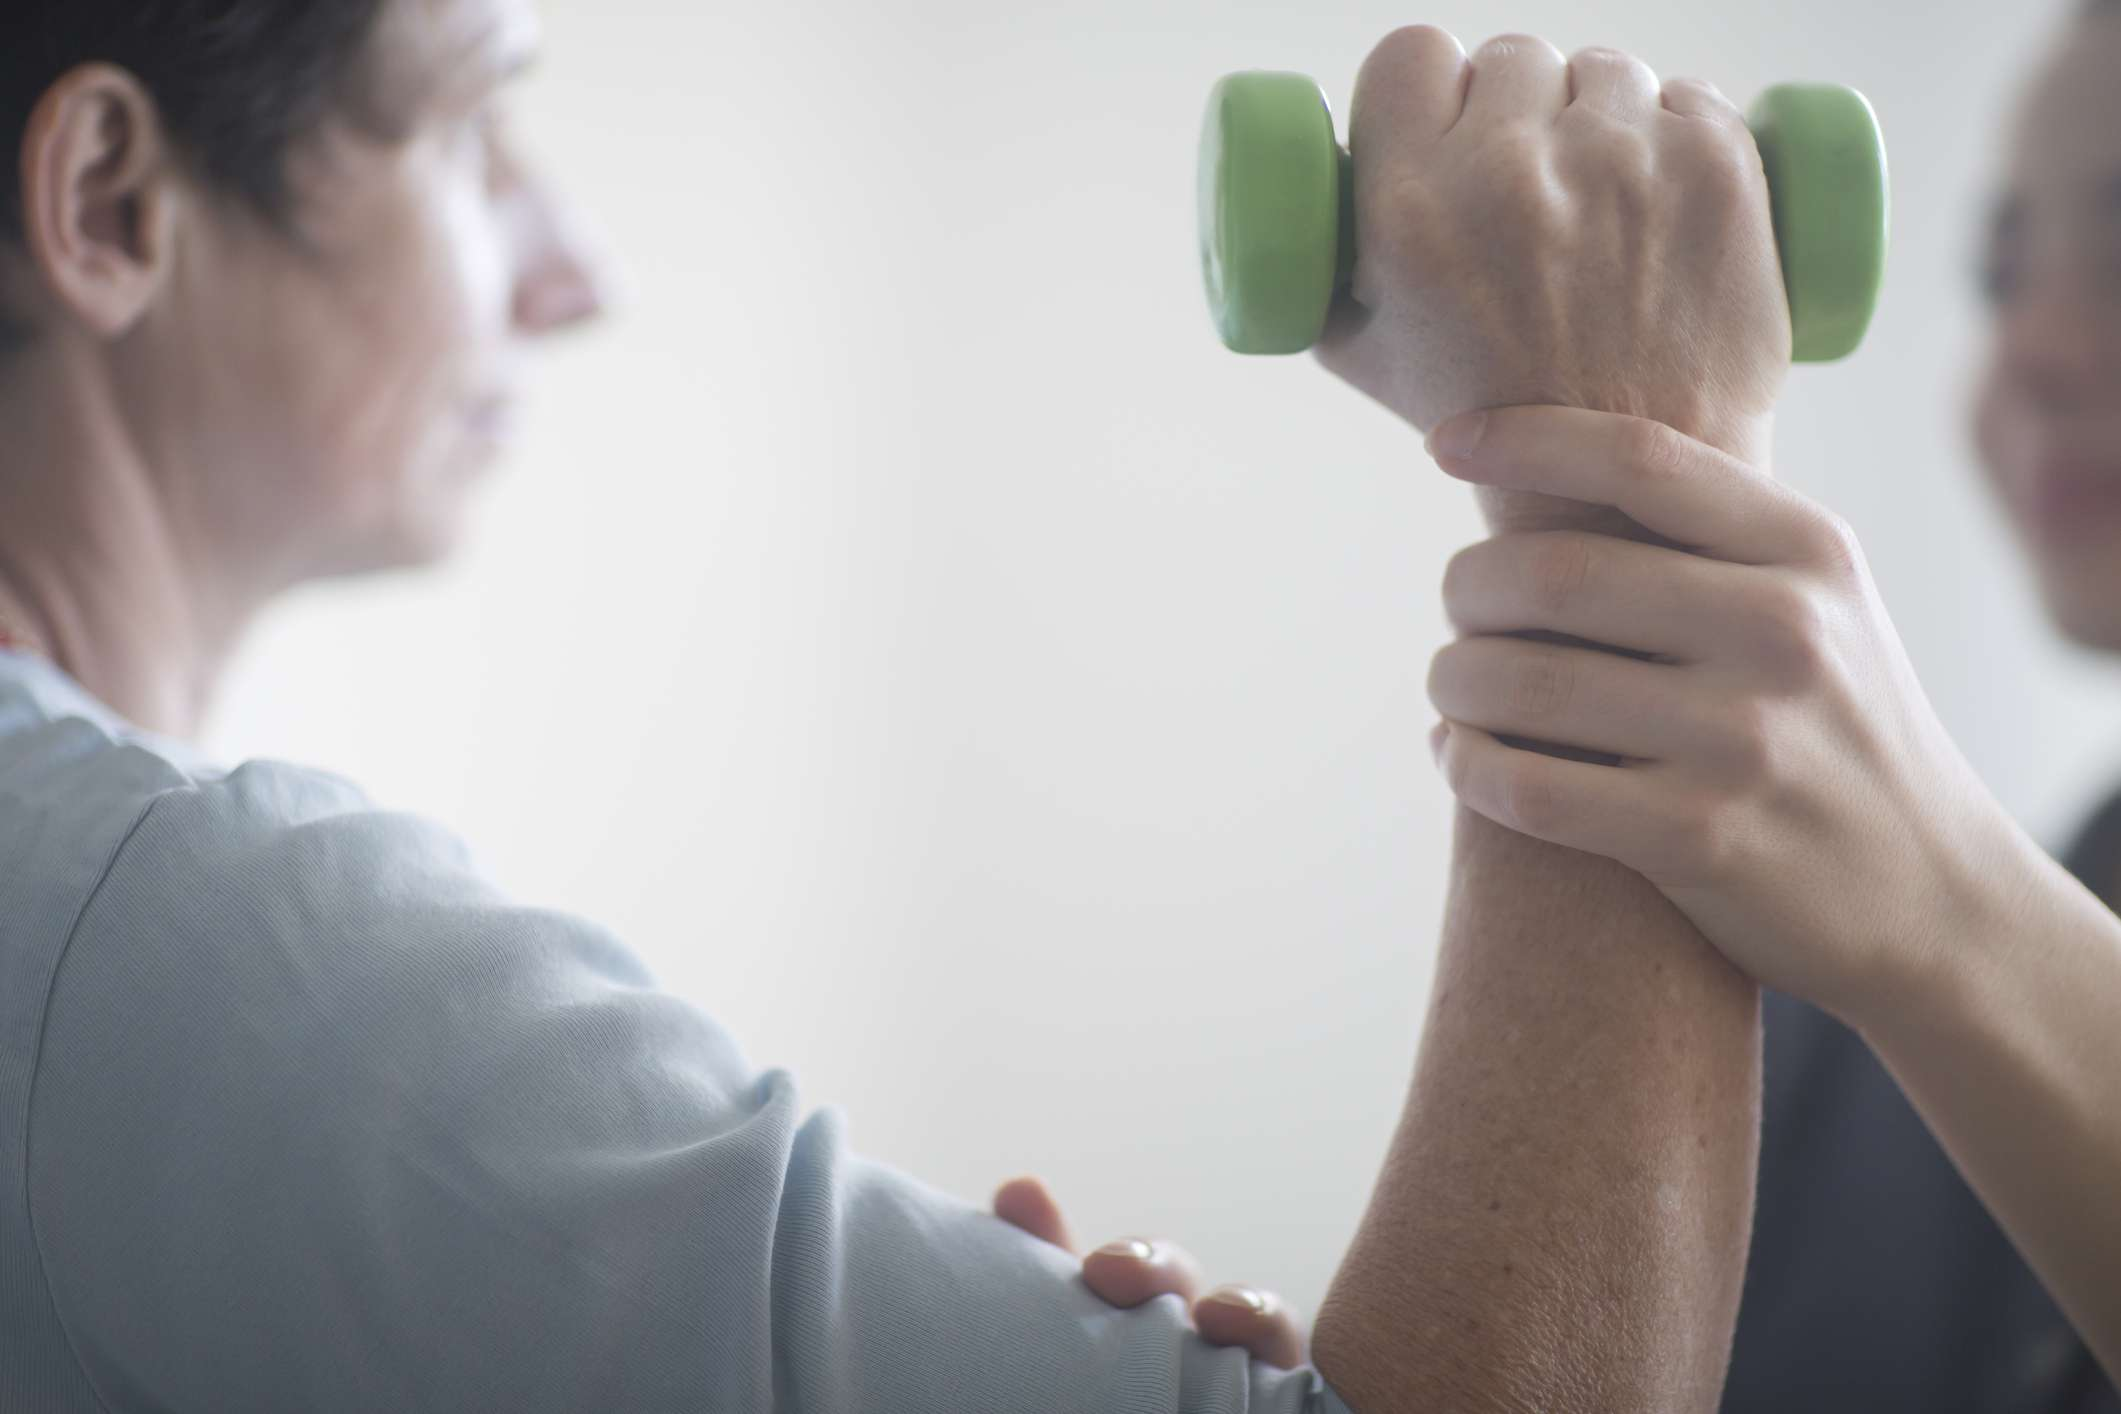 A man in physical therapy